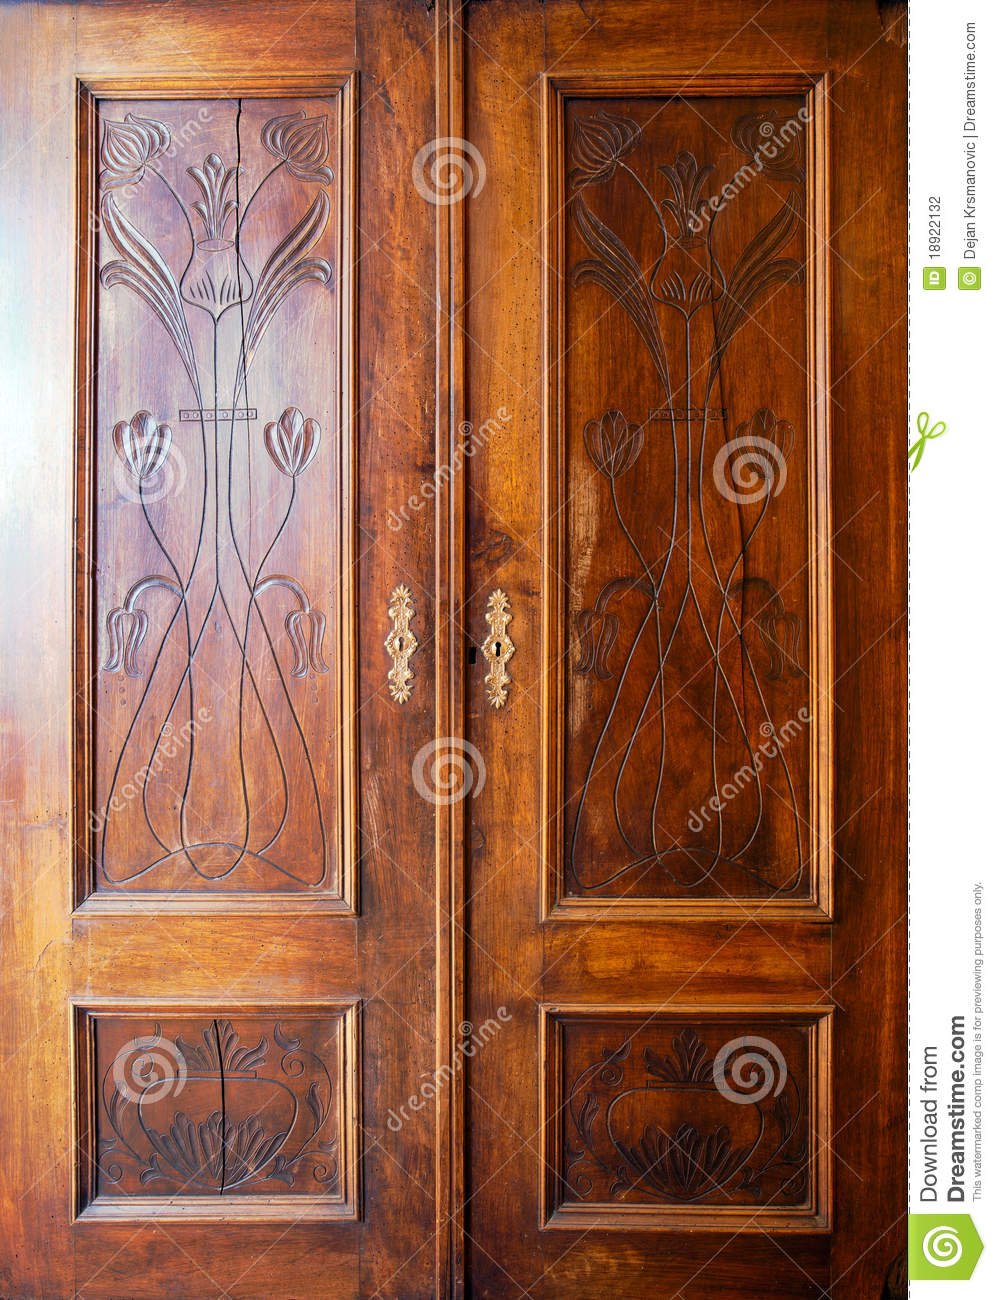 Royalty-Free Stock Photo & Wooden closet doors stock photo. Image of cabinet material - 18922132 pezcame.com